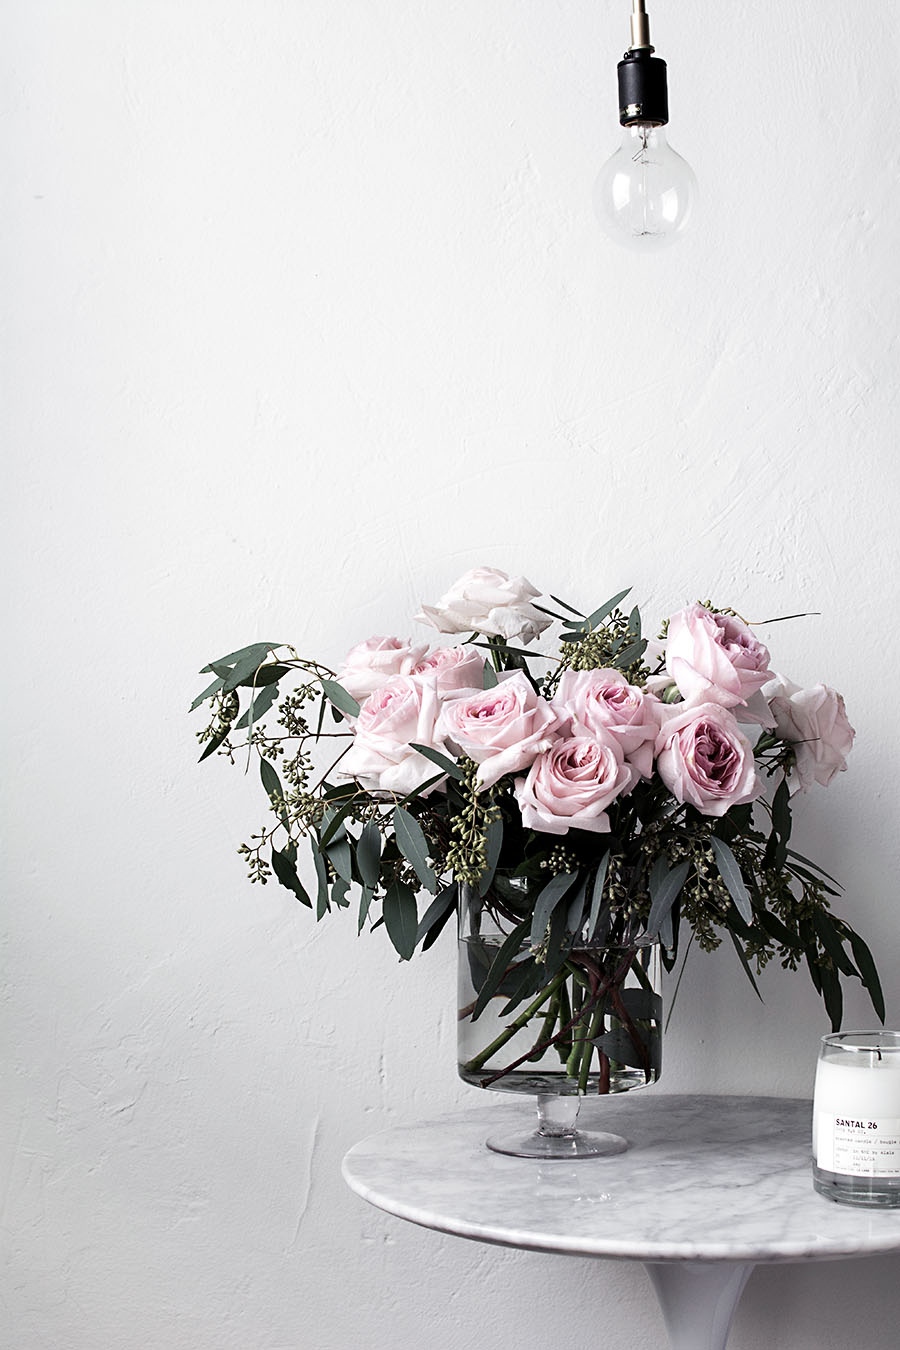 Simple tips for arranging flowers at home homey oh my actually ill get into it a tiny bit to explain my usual choice for greens i love using seeded eucalyptus because the seedy parts act like filler flowers izmirmasajfo